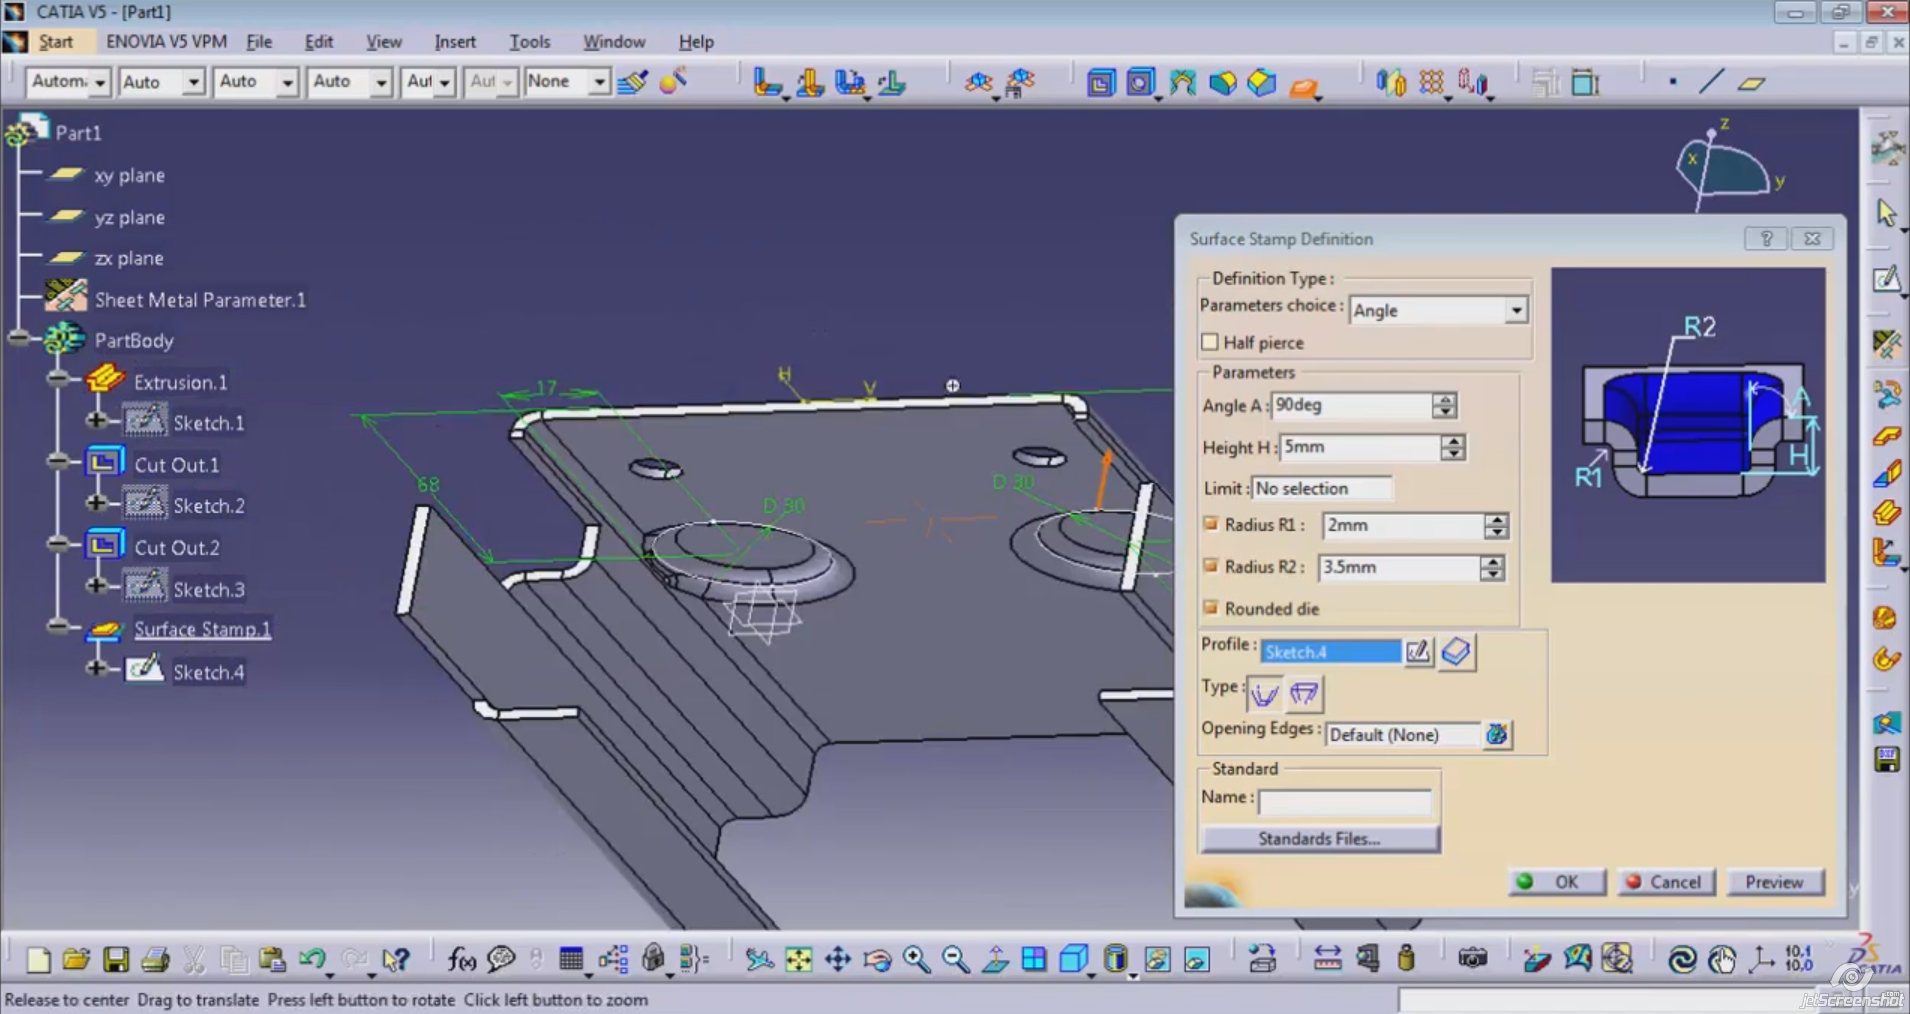 Catia V5 Fpe Fabricated Product Creation Technodat Cz